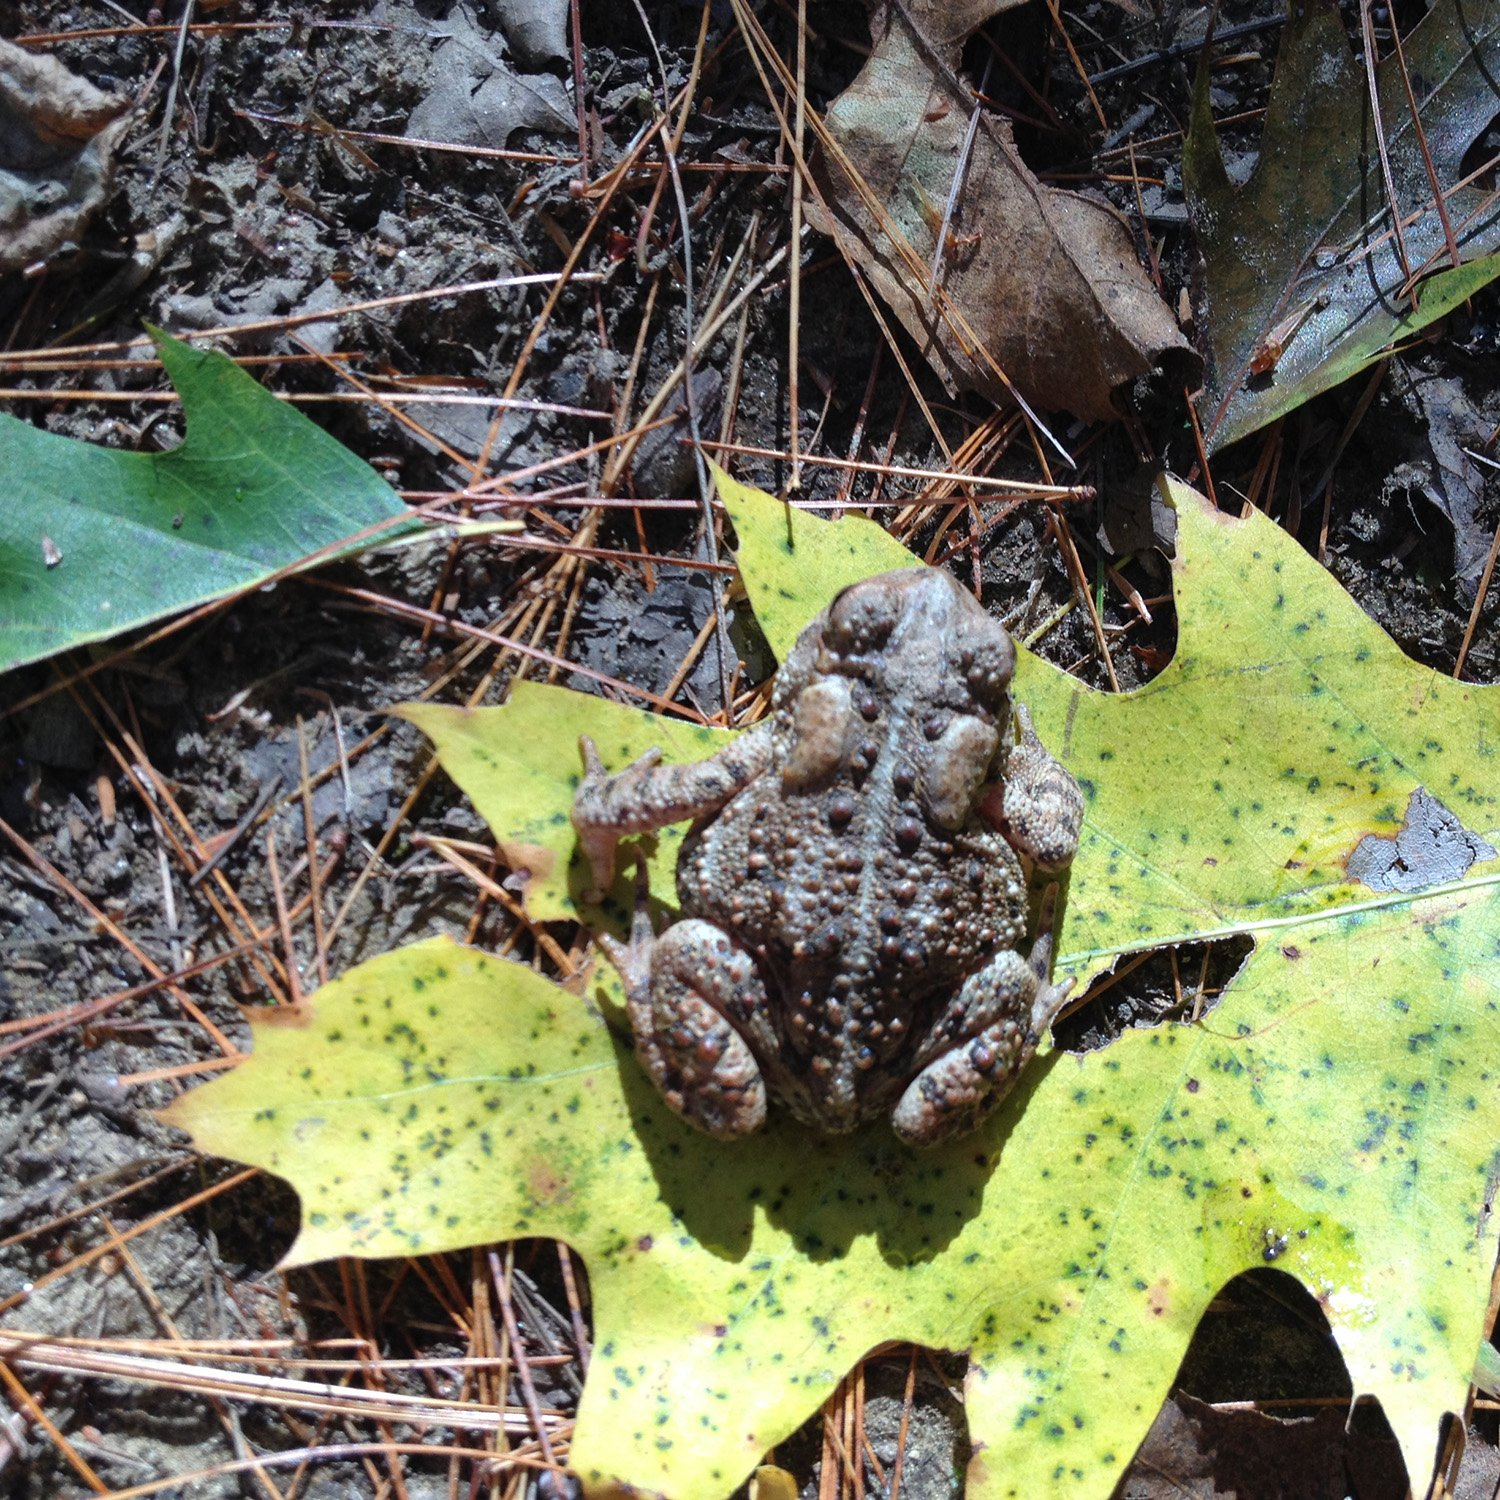 Had it not leaped onto a yellow leaf, this toad might never have reveaIed itself to Casco's Donna Morton as she hiked through Androscoggin Riverland State Park recently.